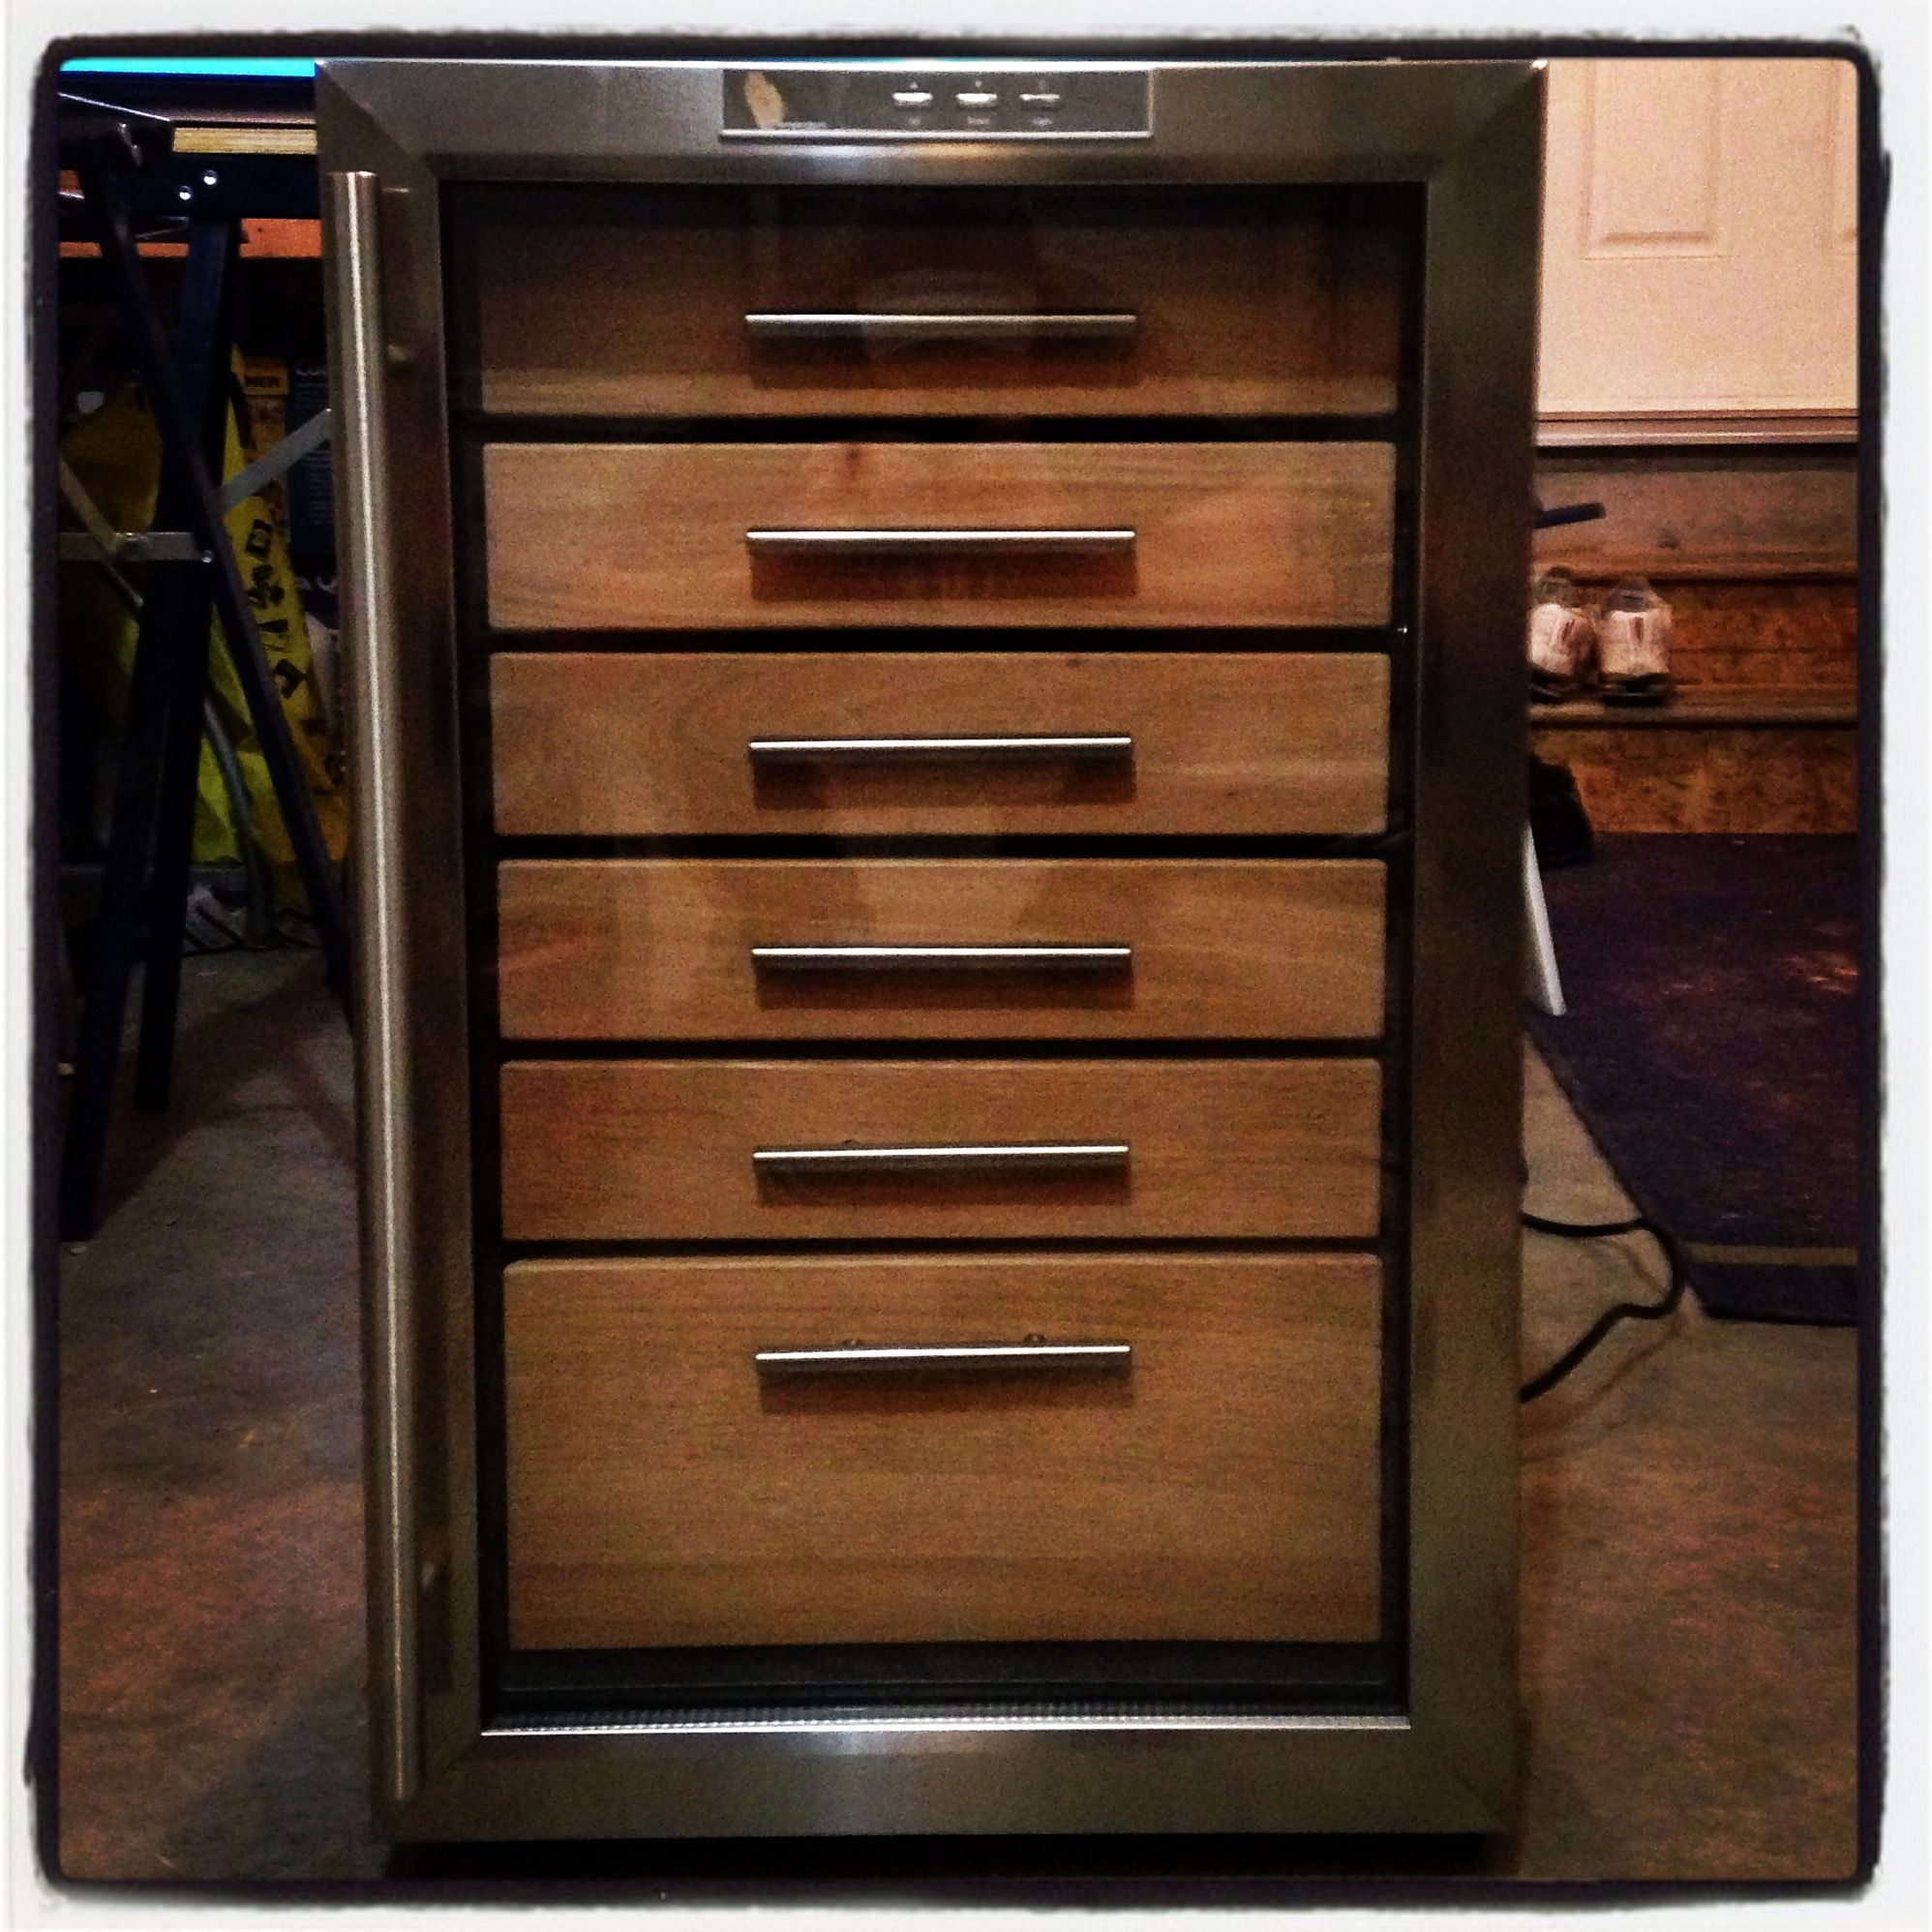 28 Bottle Wine Fridge Converted To A Cigar Humidor